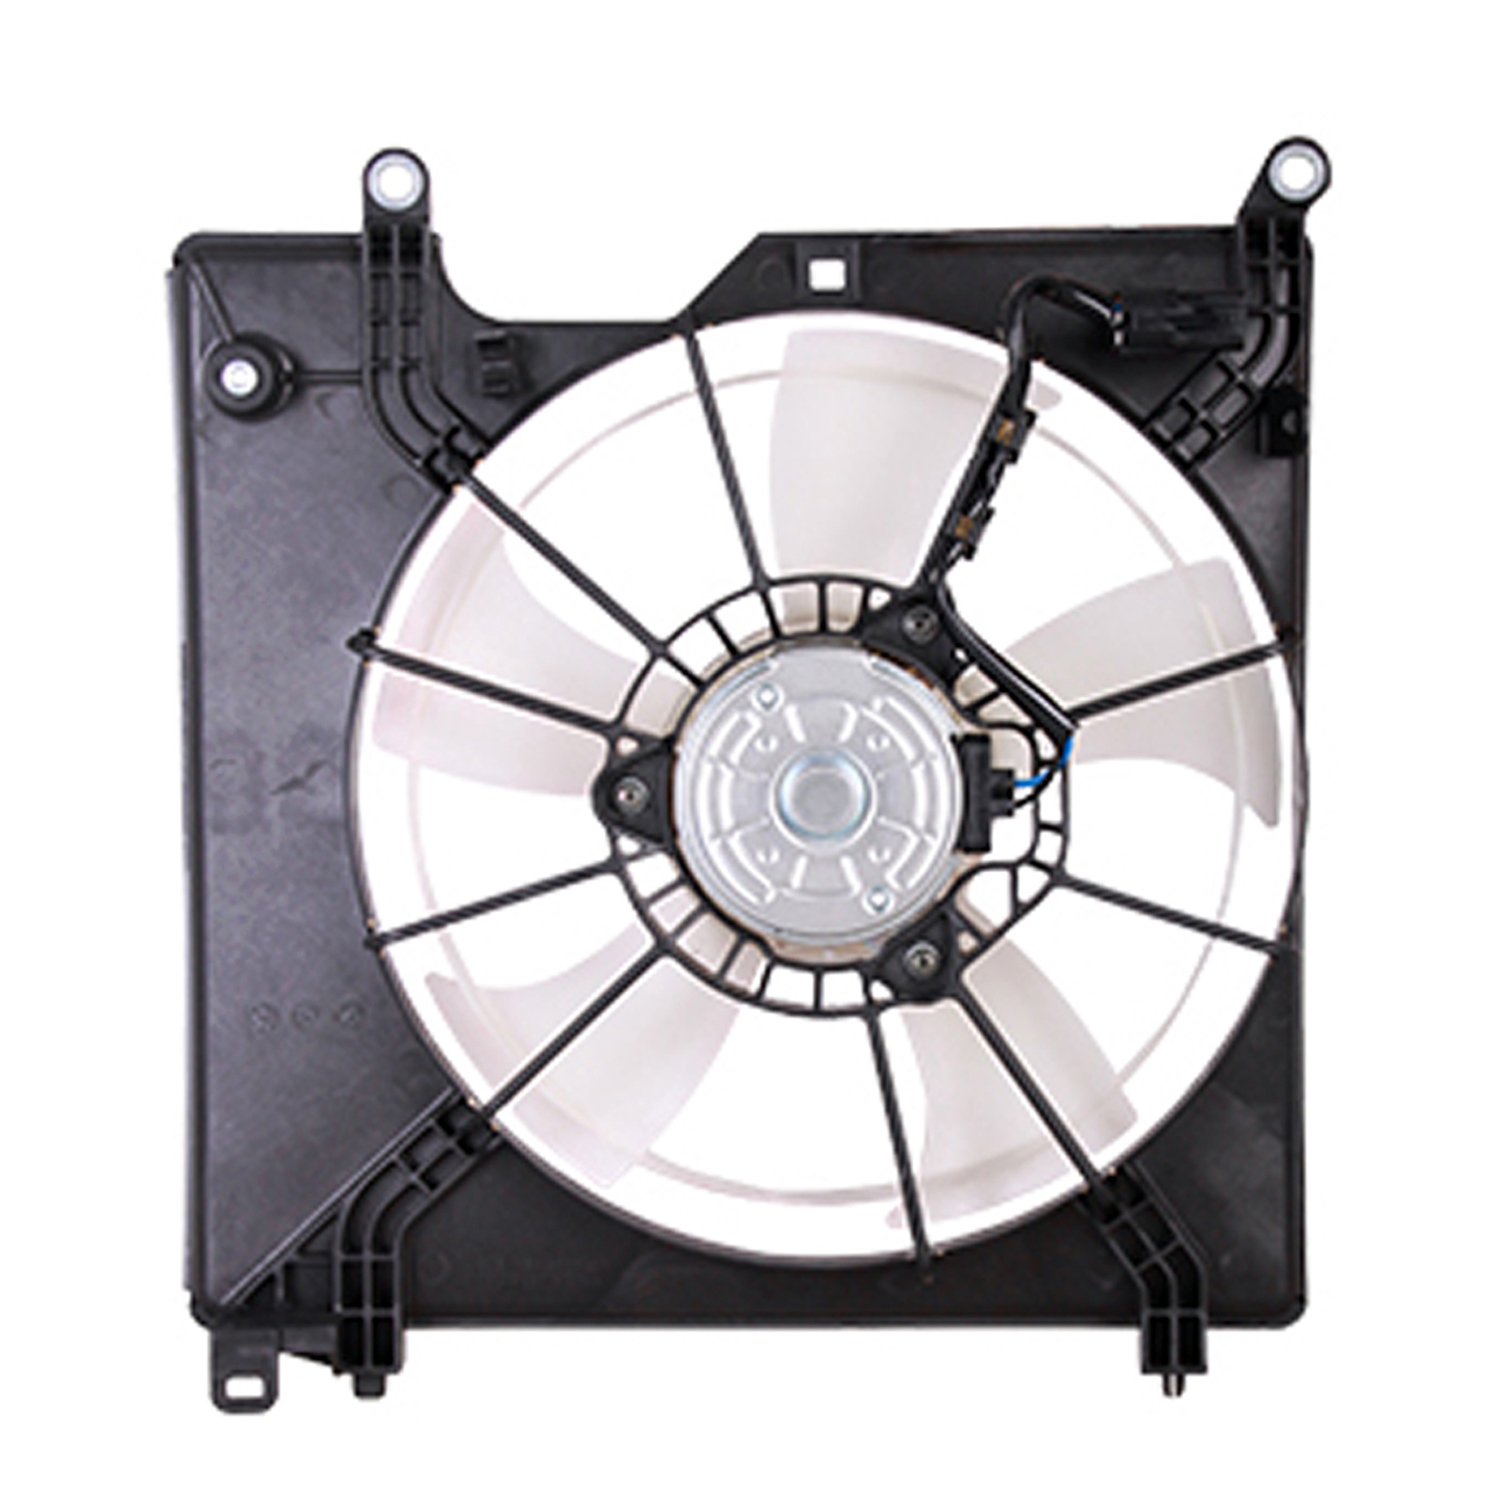 CPP Replacement Engine Cooling Fan Assembly AC3115129 for 2016-2017 Acura ILX